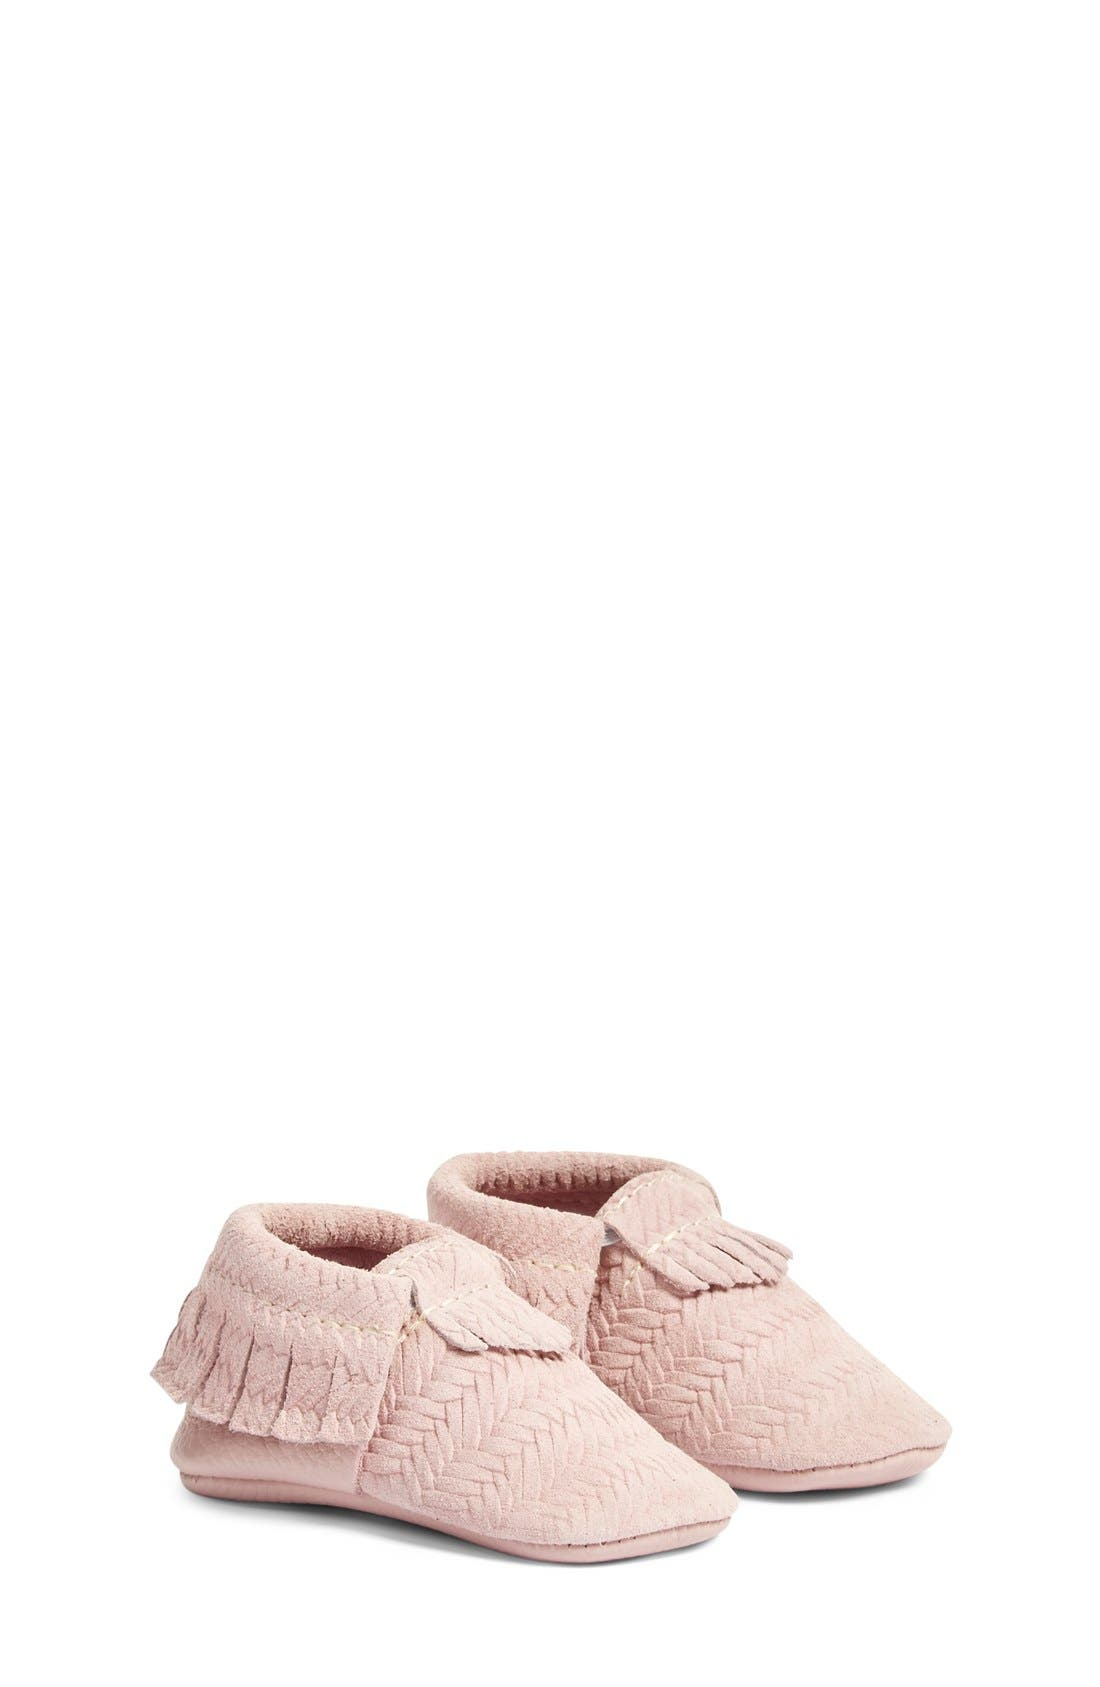 'Cardigan' Woven Leather Moccasin,                             Main thumbnail 1, color,                             680